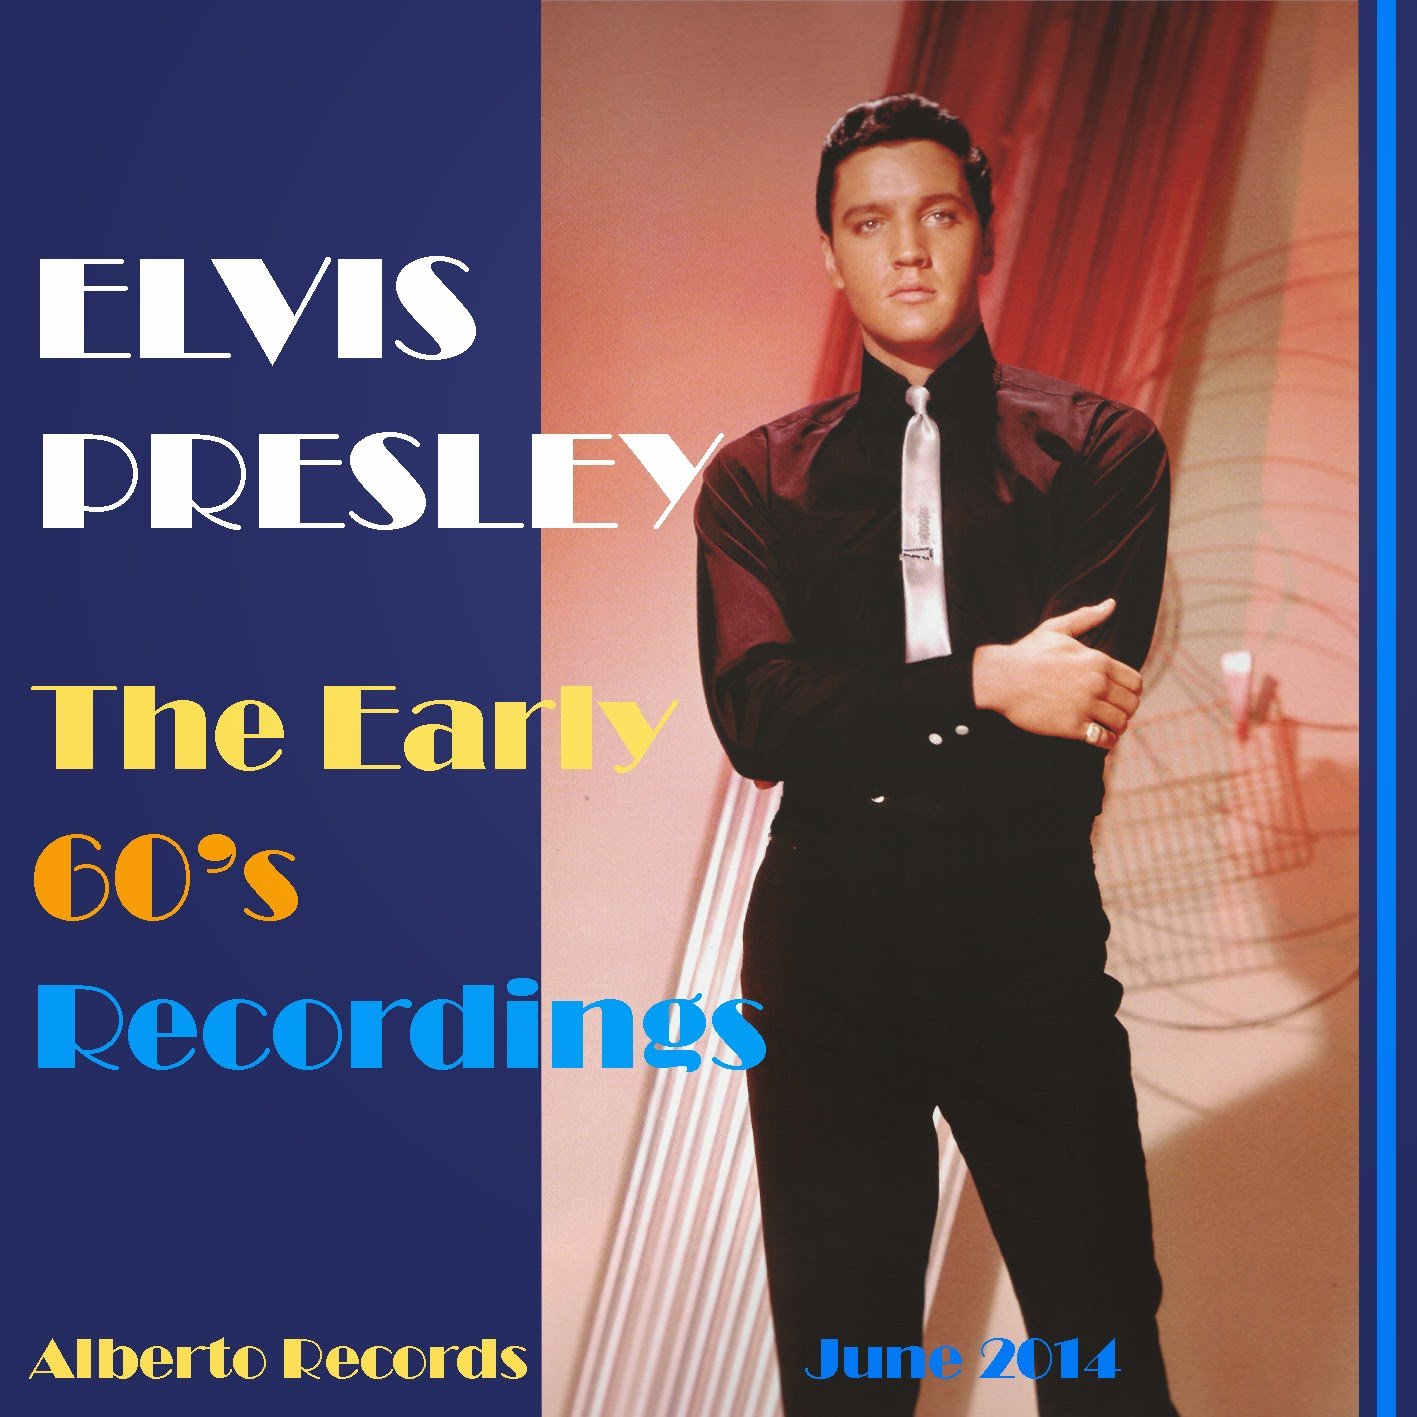 The Early 60's Recordings (June 2014)